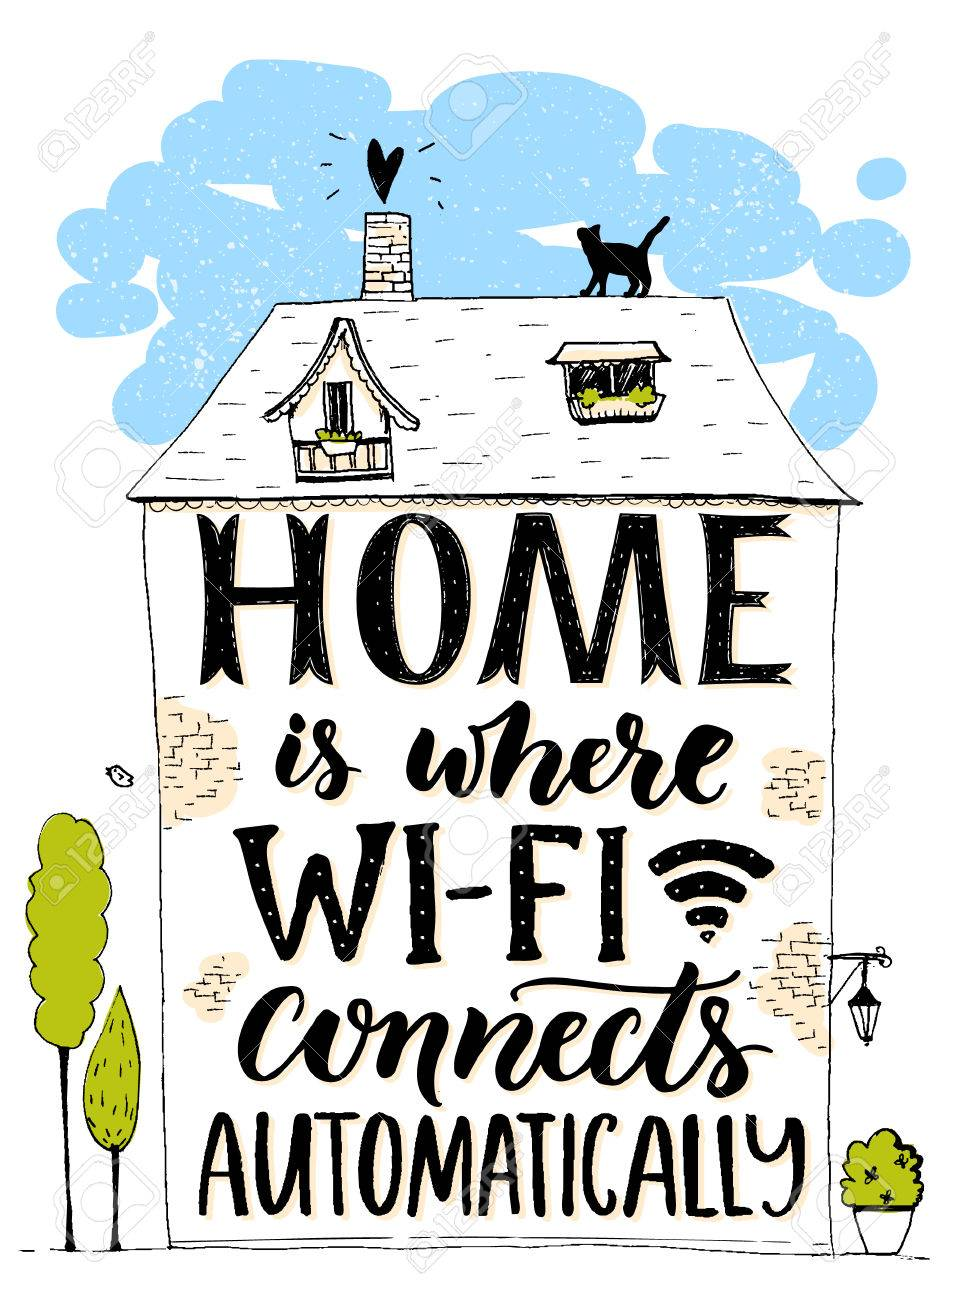 Home is where wifi connects automatically. Fun phrase about internet. Handmade lettering in hand drawn house with cat and trees. Inspirational poster, t-shirt print - 60316451